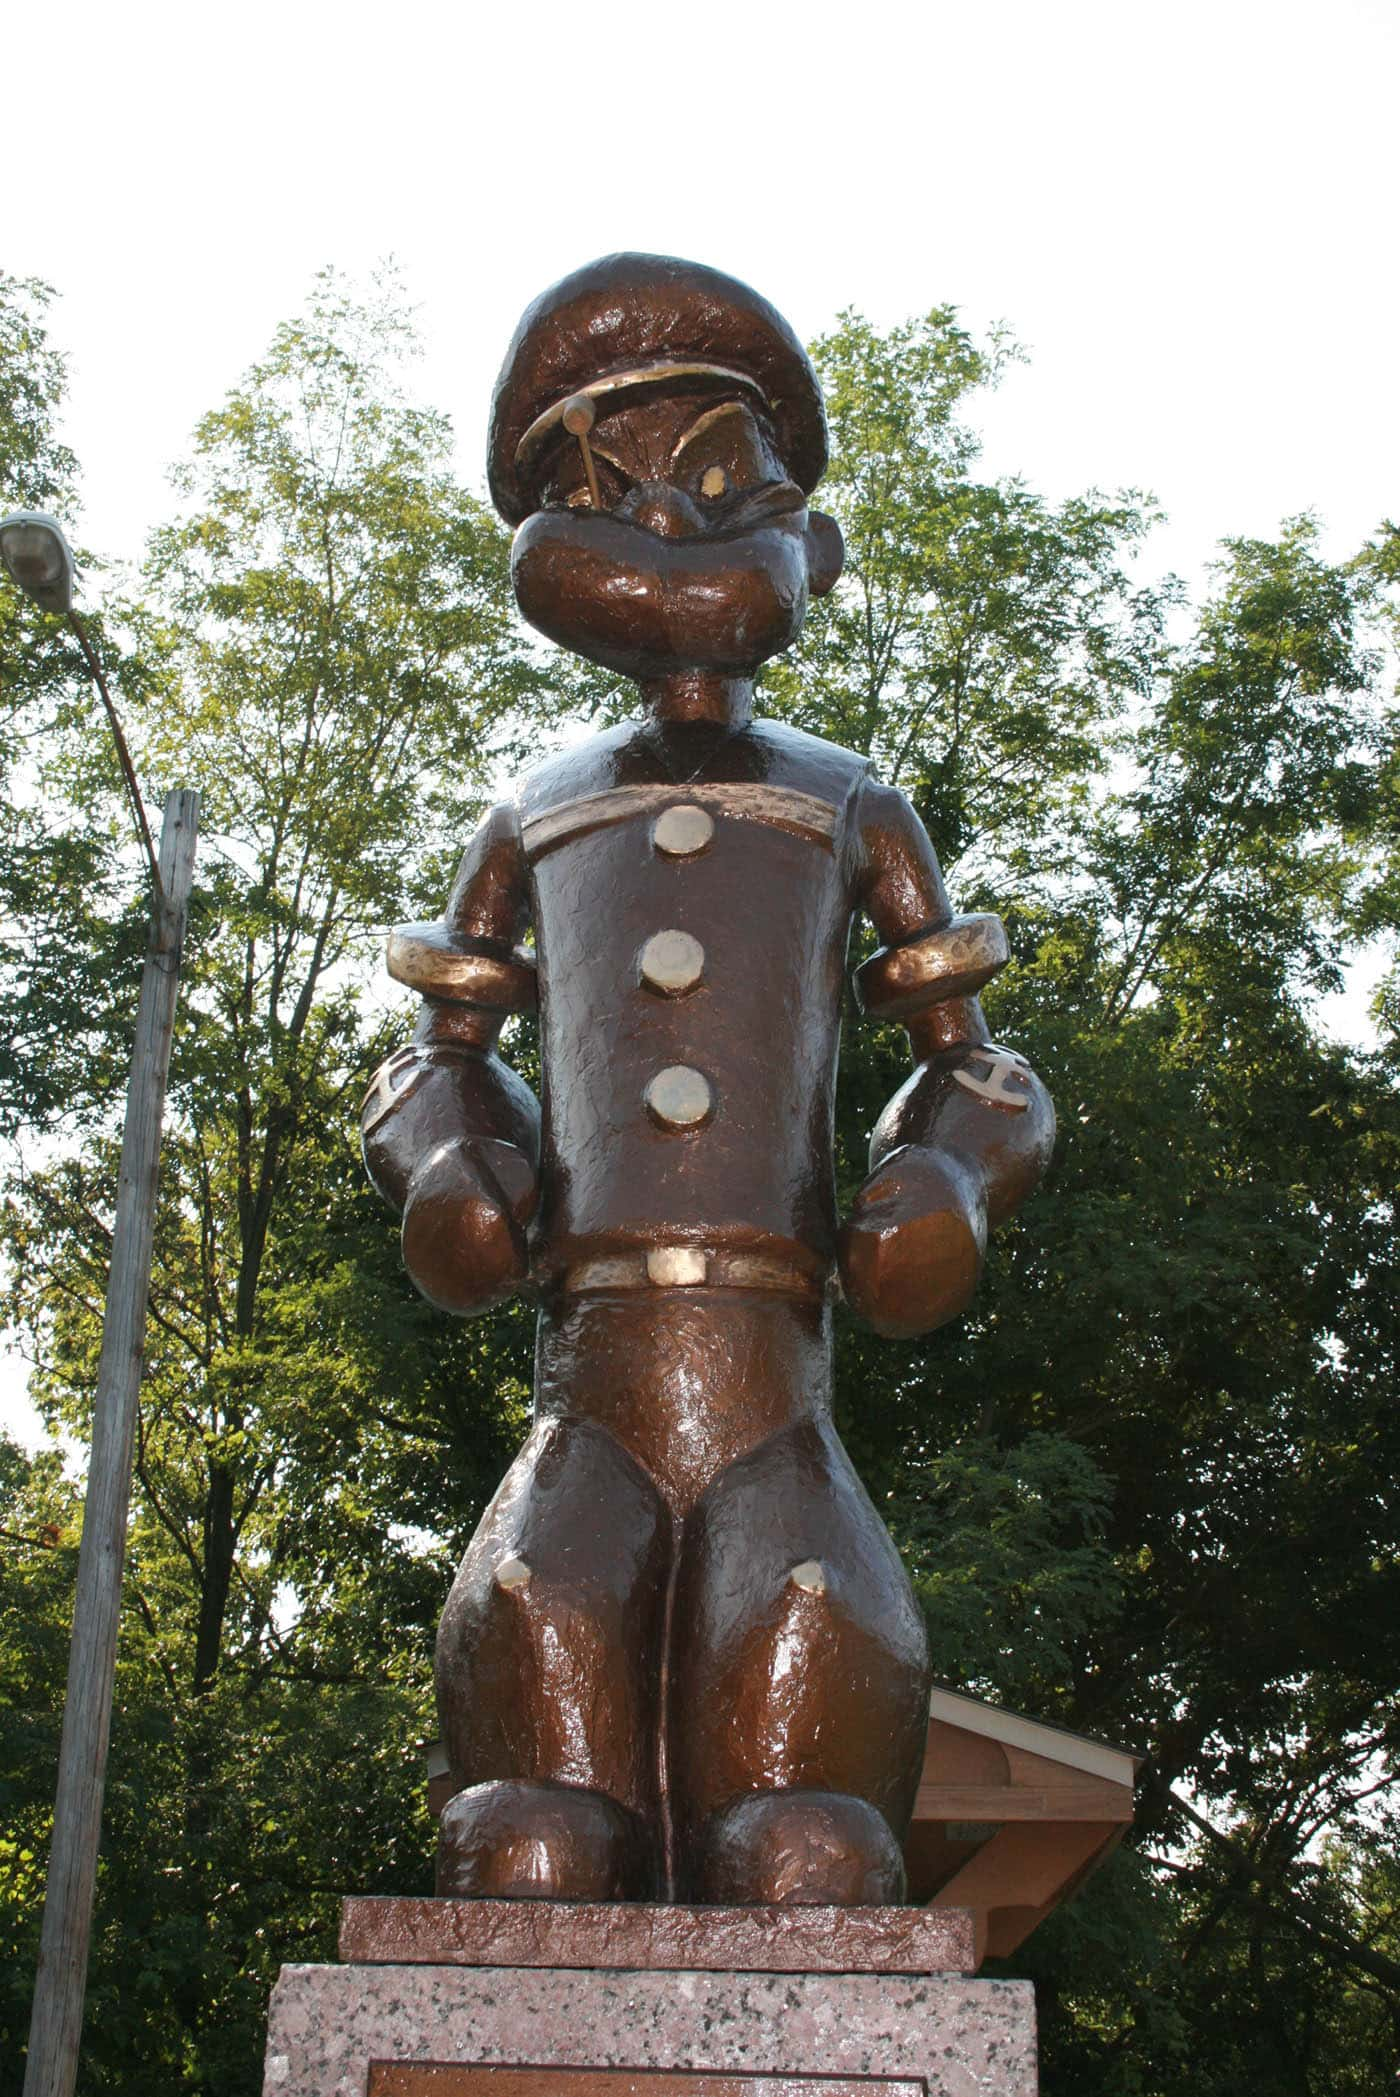 ILLINOIS ROAD TRIP AND ROADSIDE ATTRACTIONS: POPEYE STATUE IN CHESTER